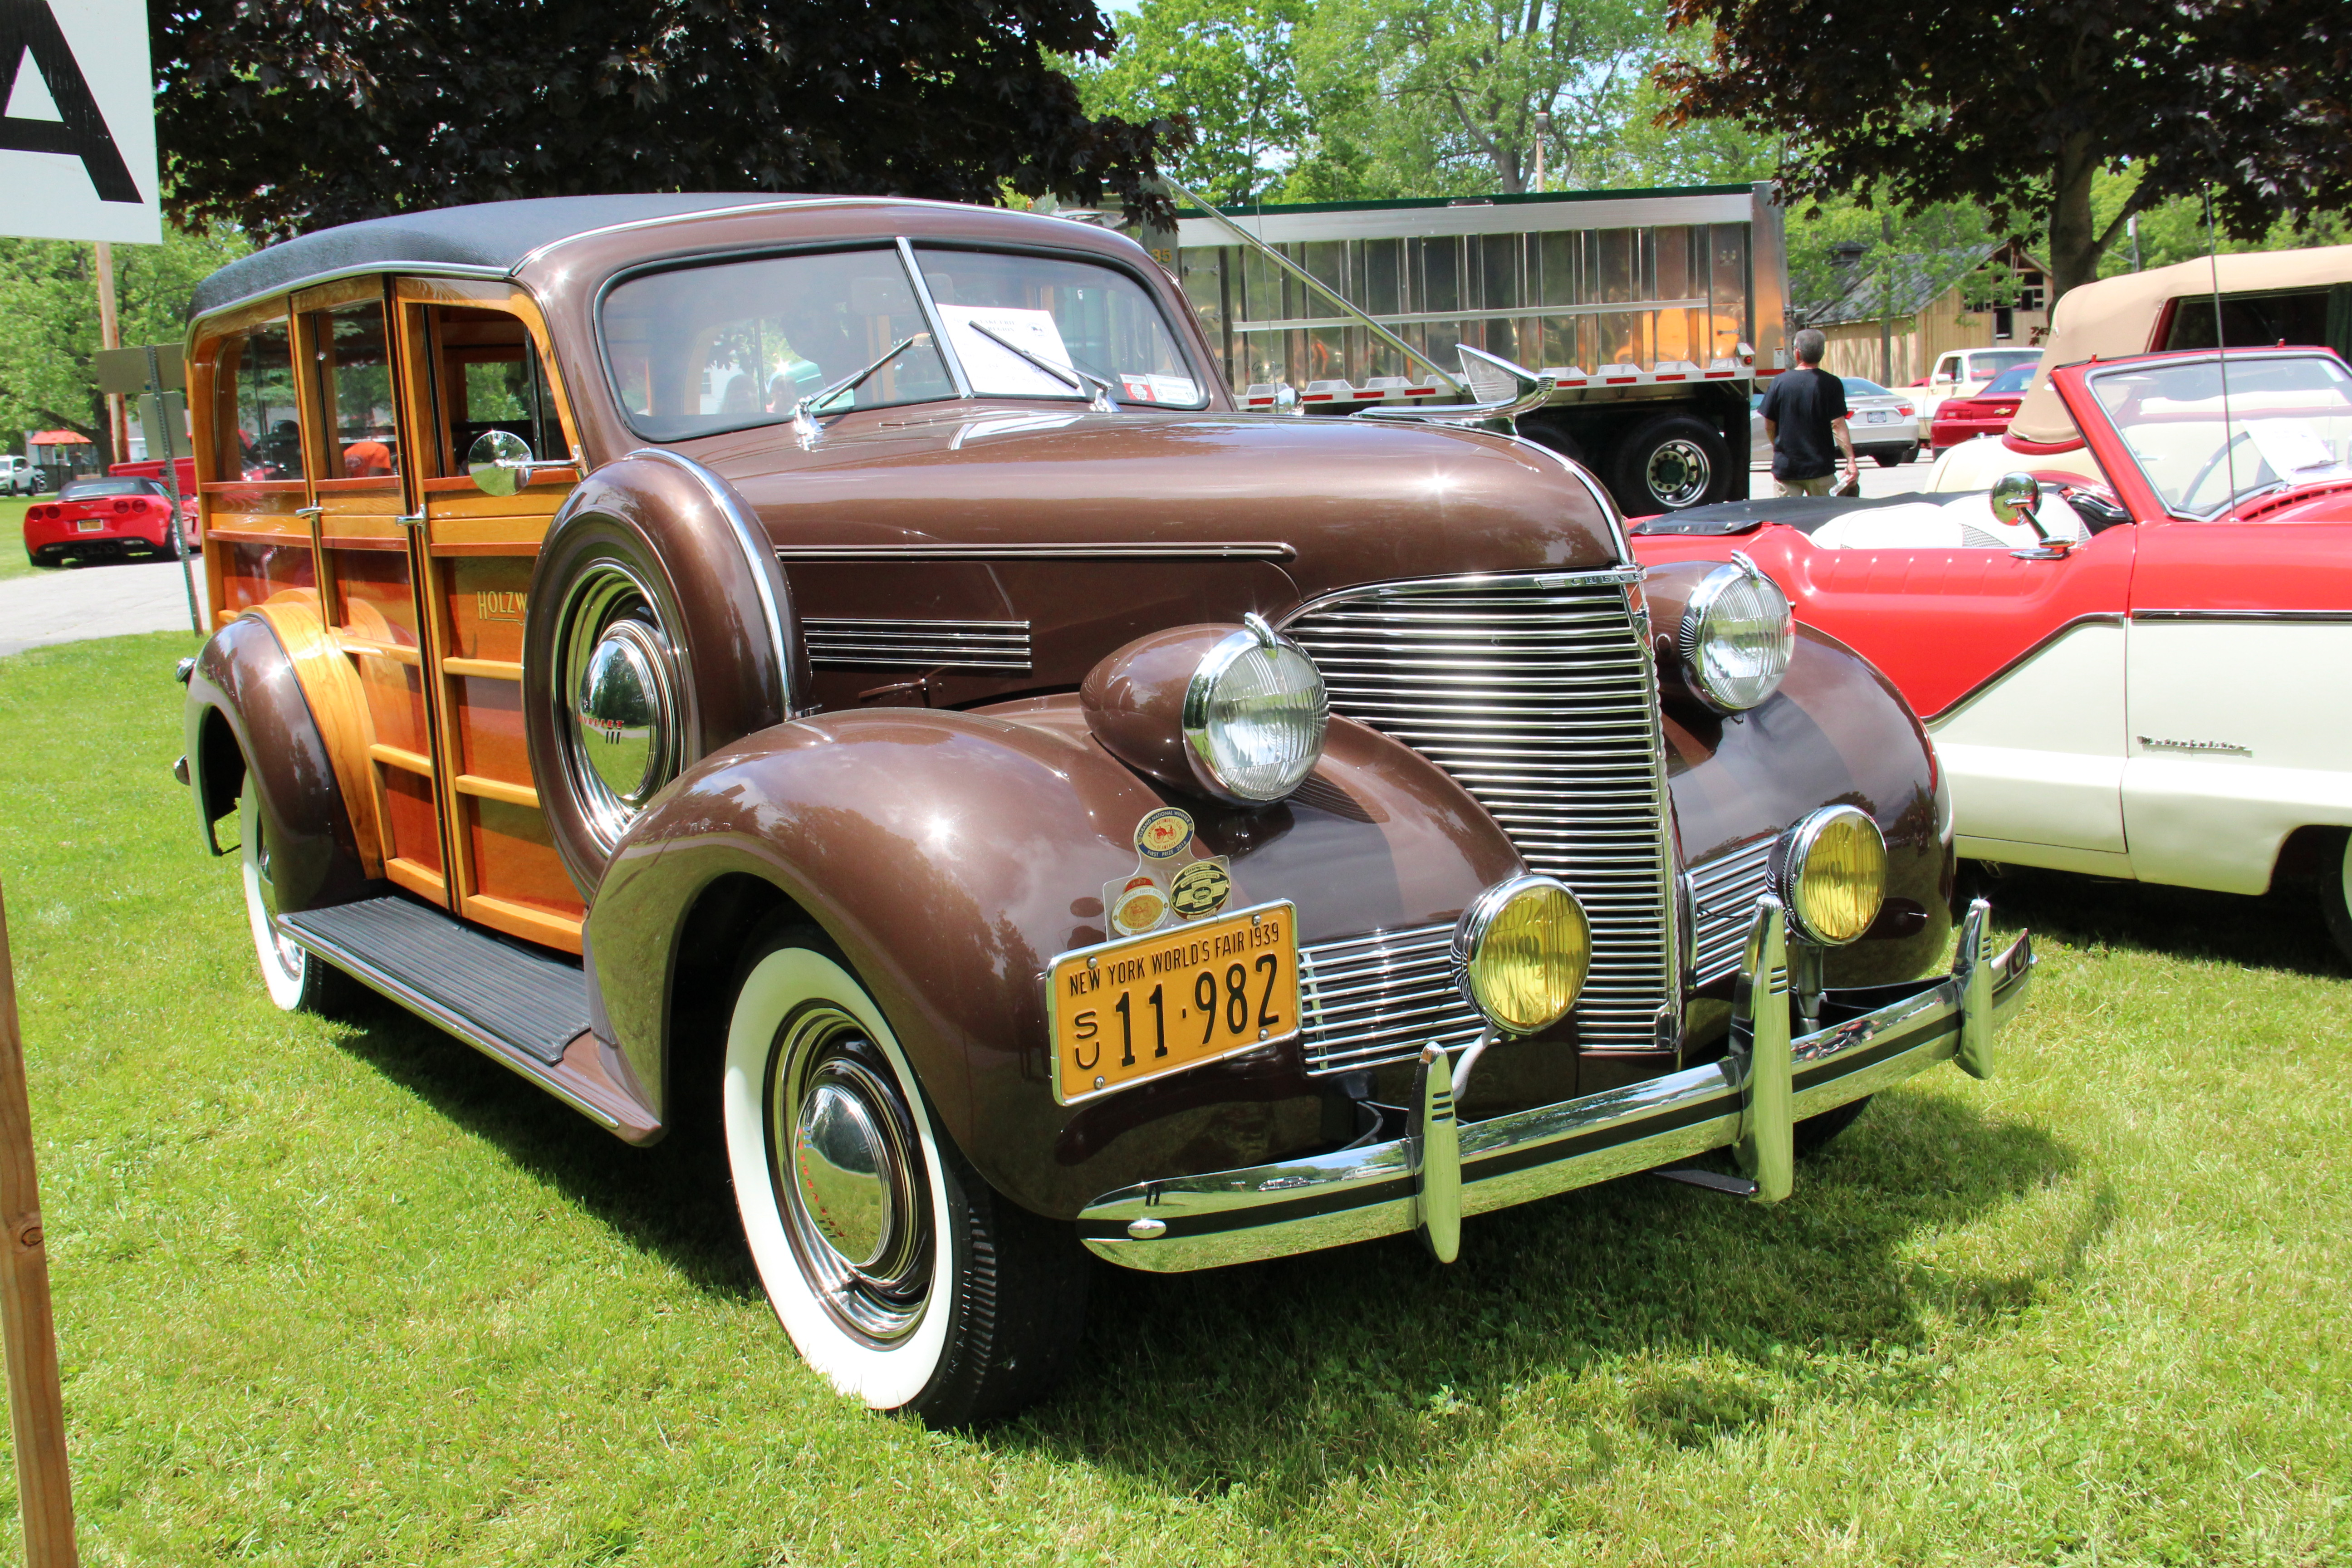 IMG_0628-Class-1A-Ted-Holz-1939-Chevrolet-Station-Wagon-LER